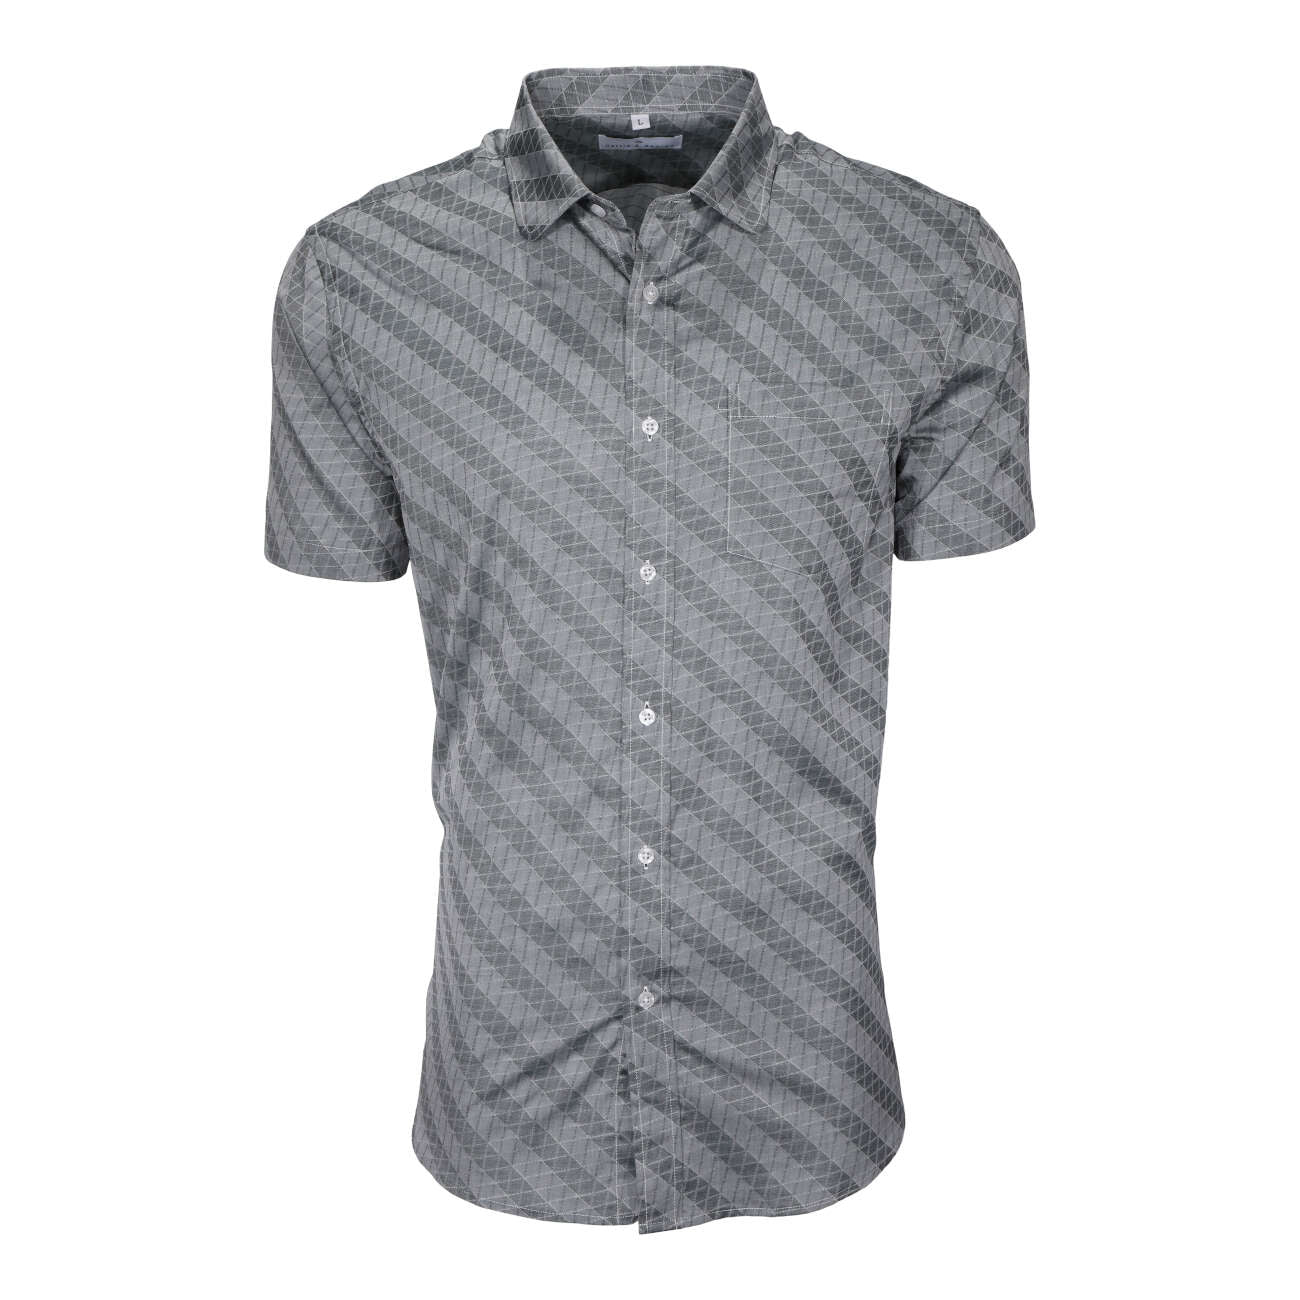 Steel Gray men's short sleeve dress shirt.